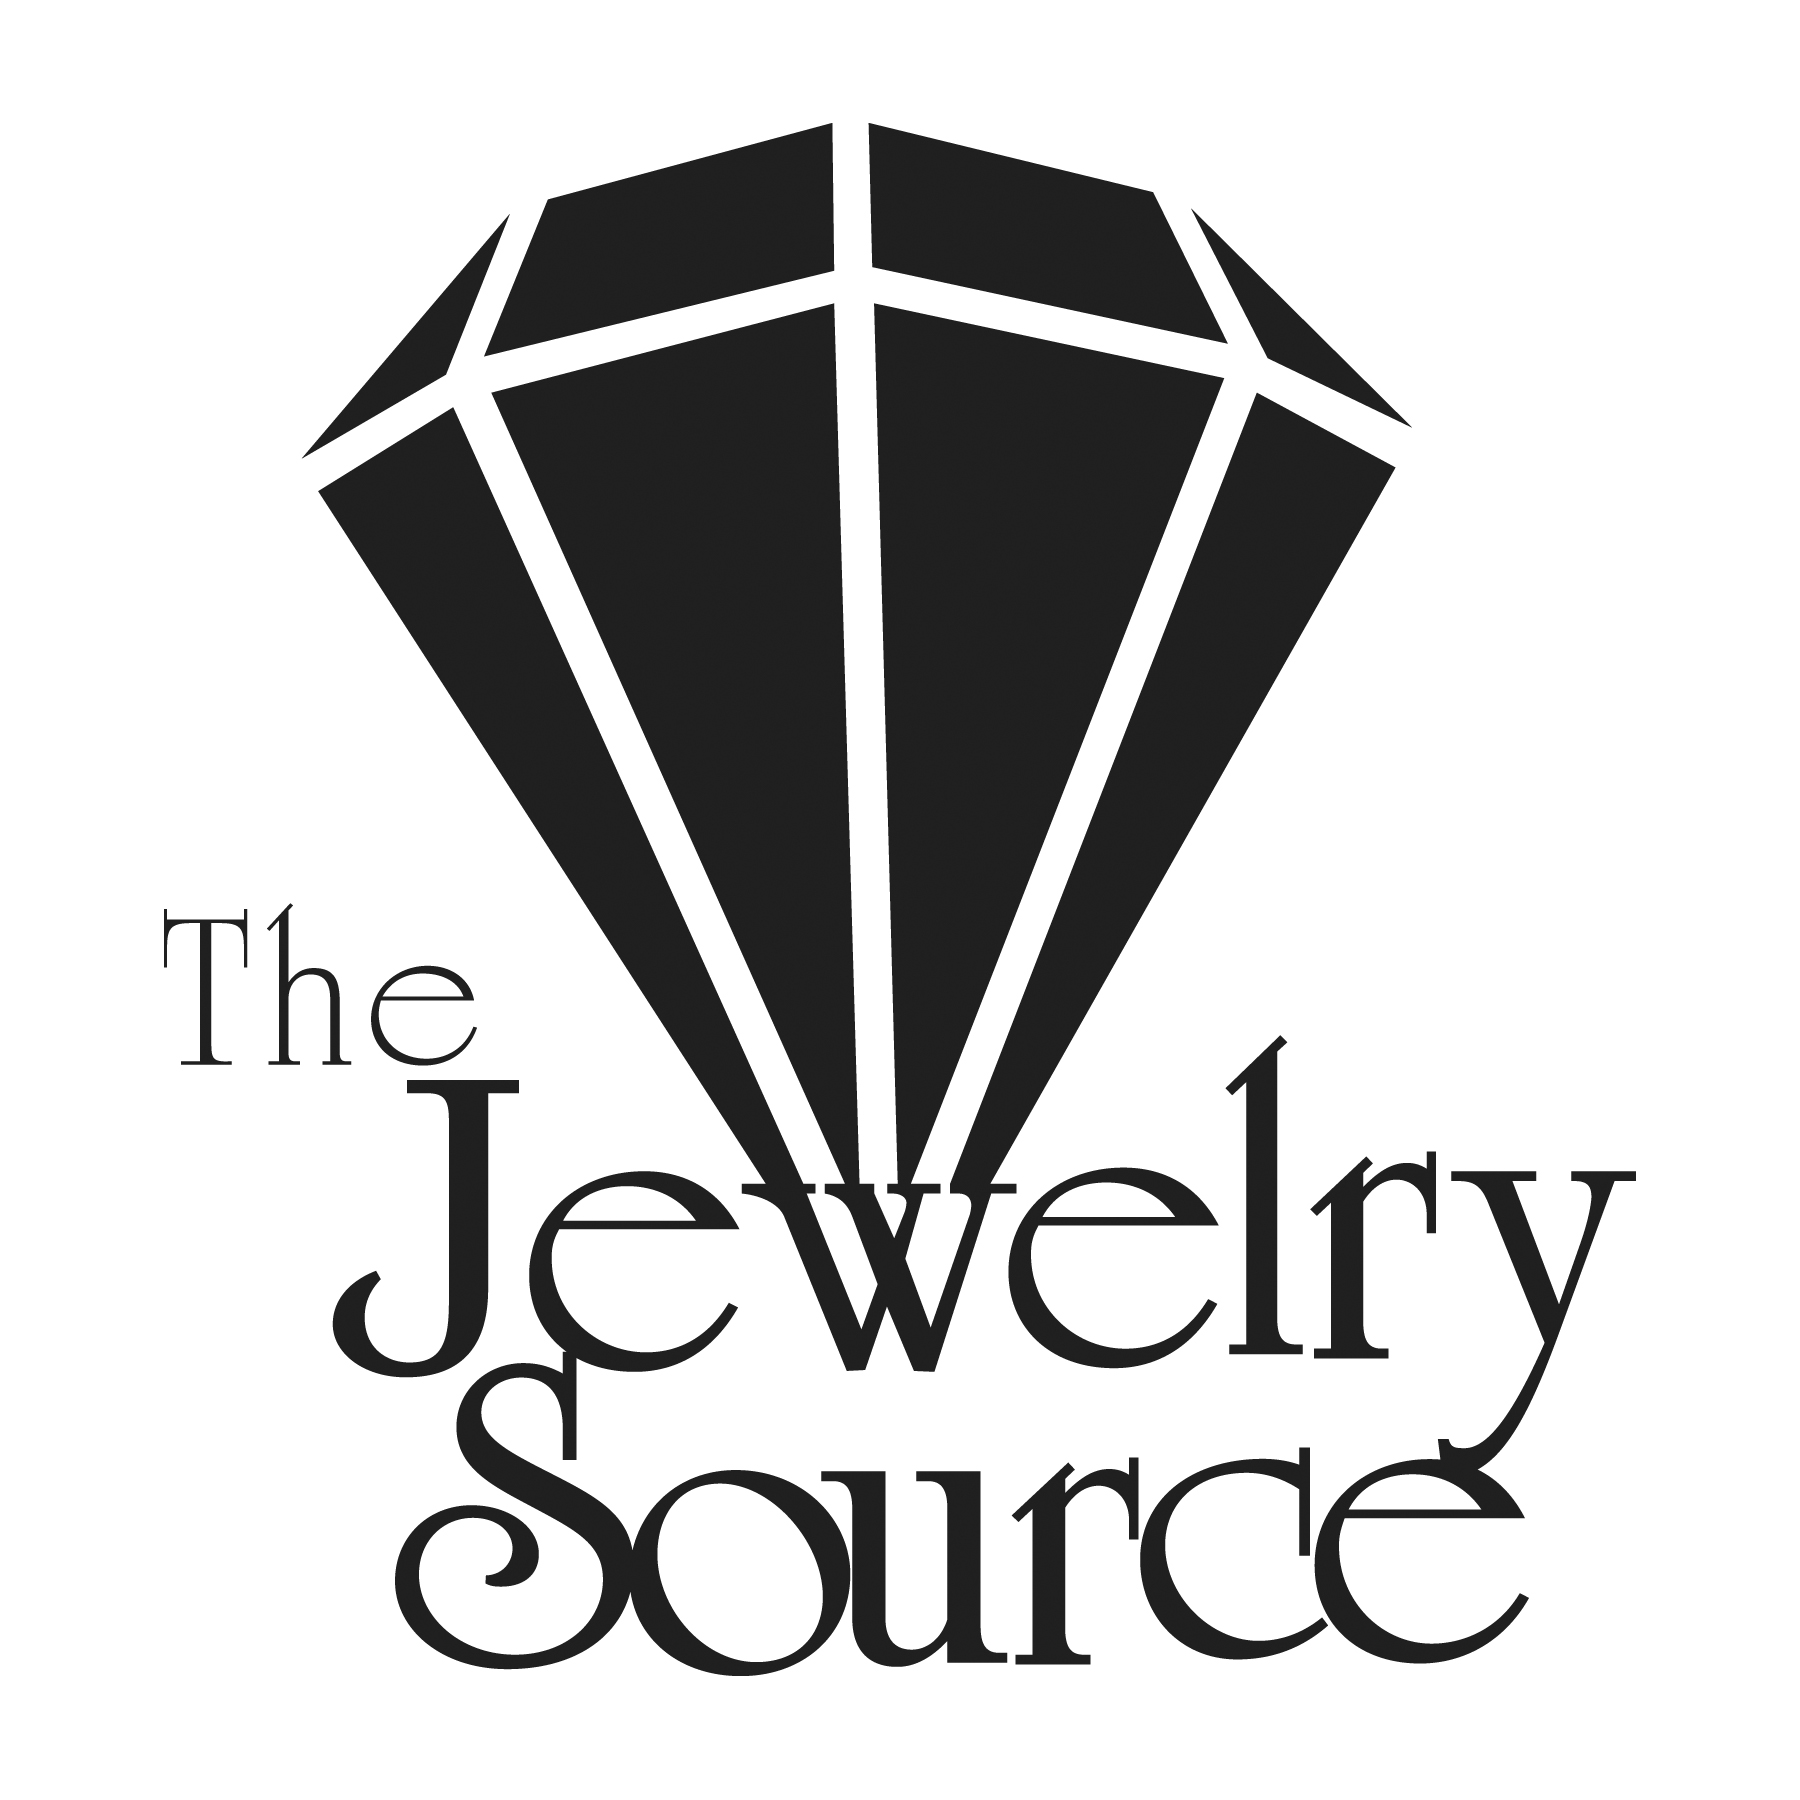 Jewelry+Source